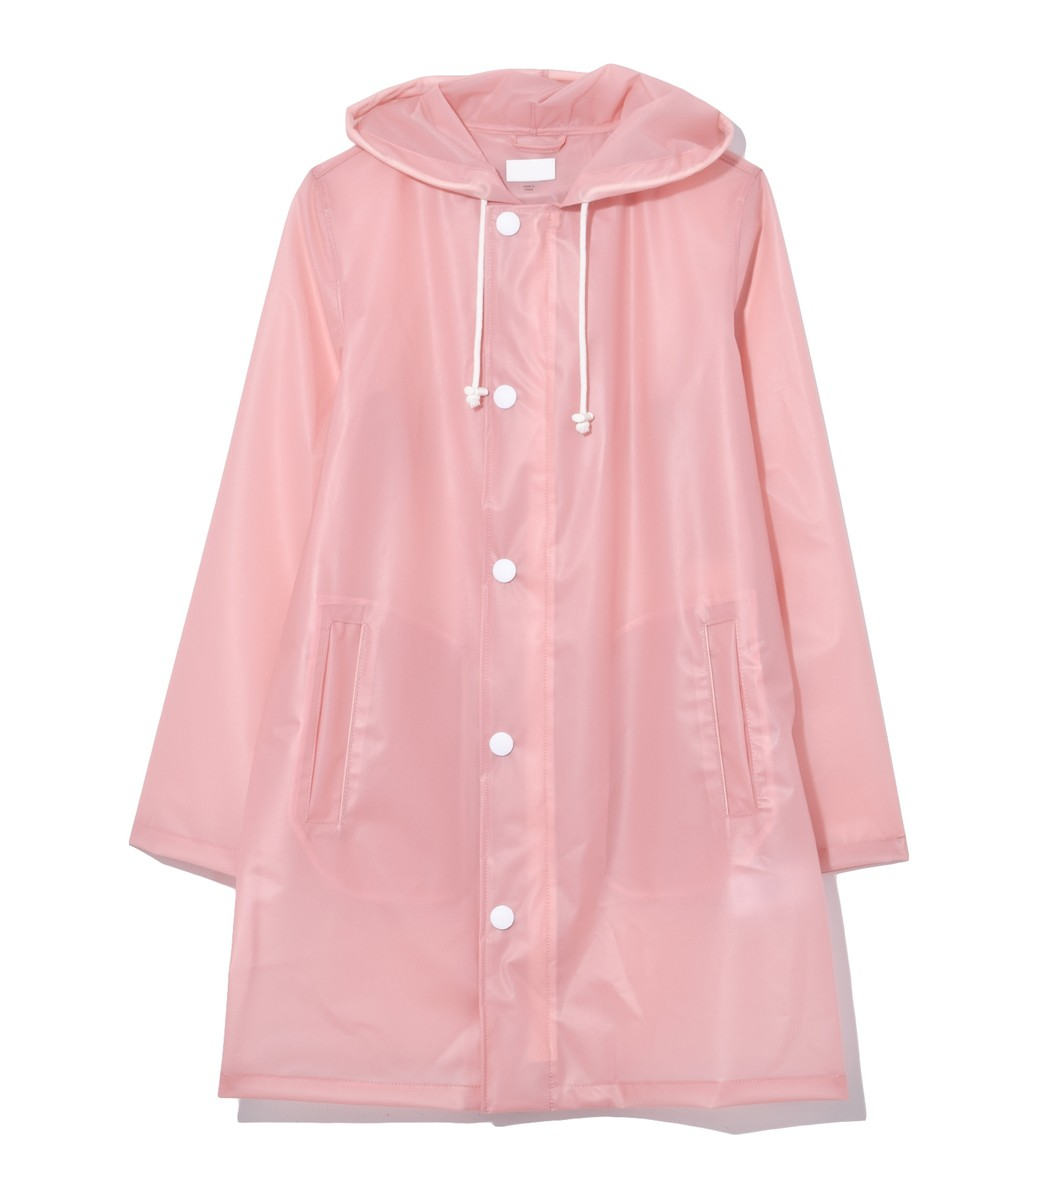 Mother Coats The Raincoat in Pitter Patter